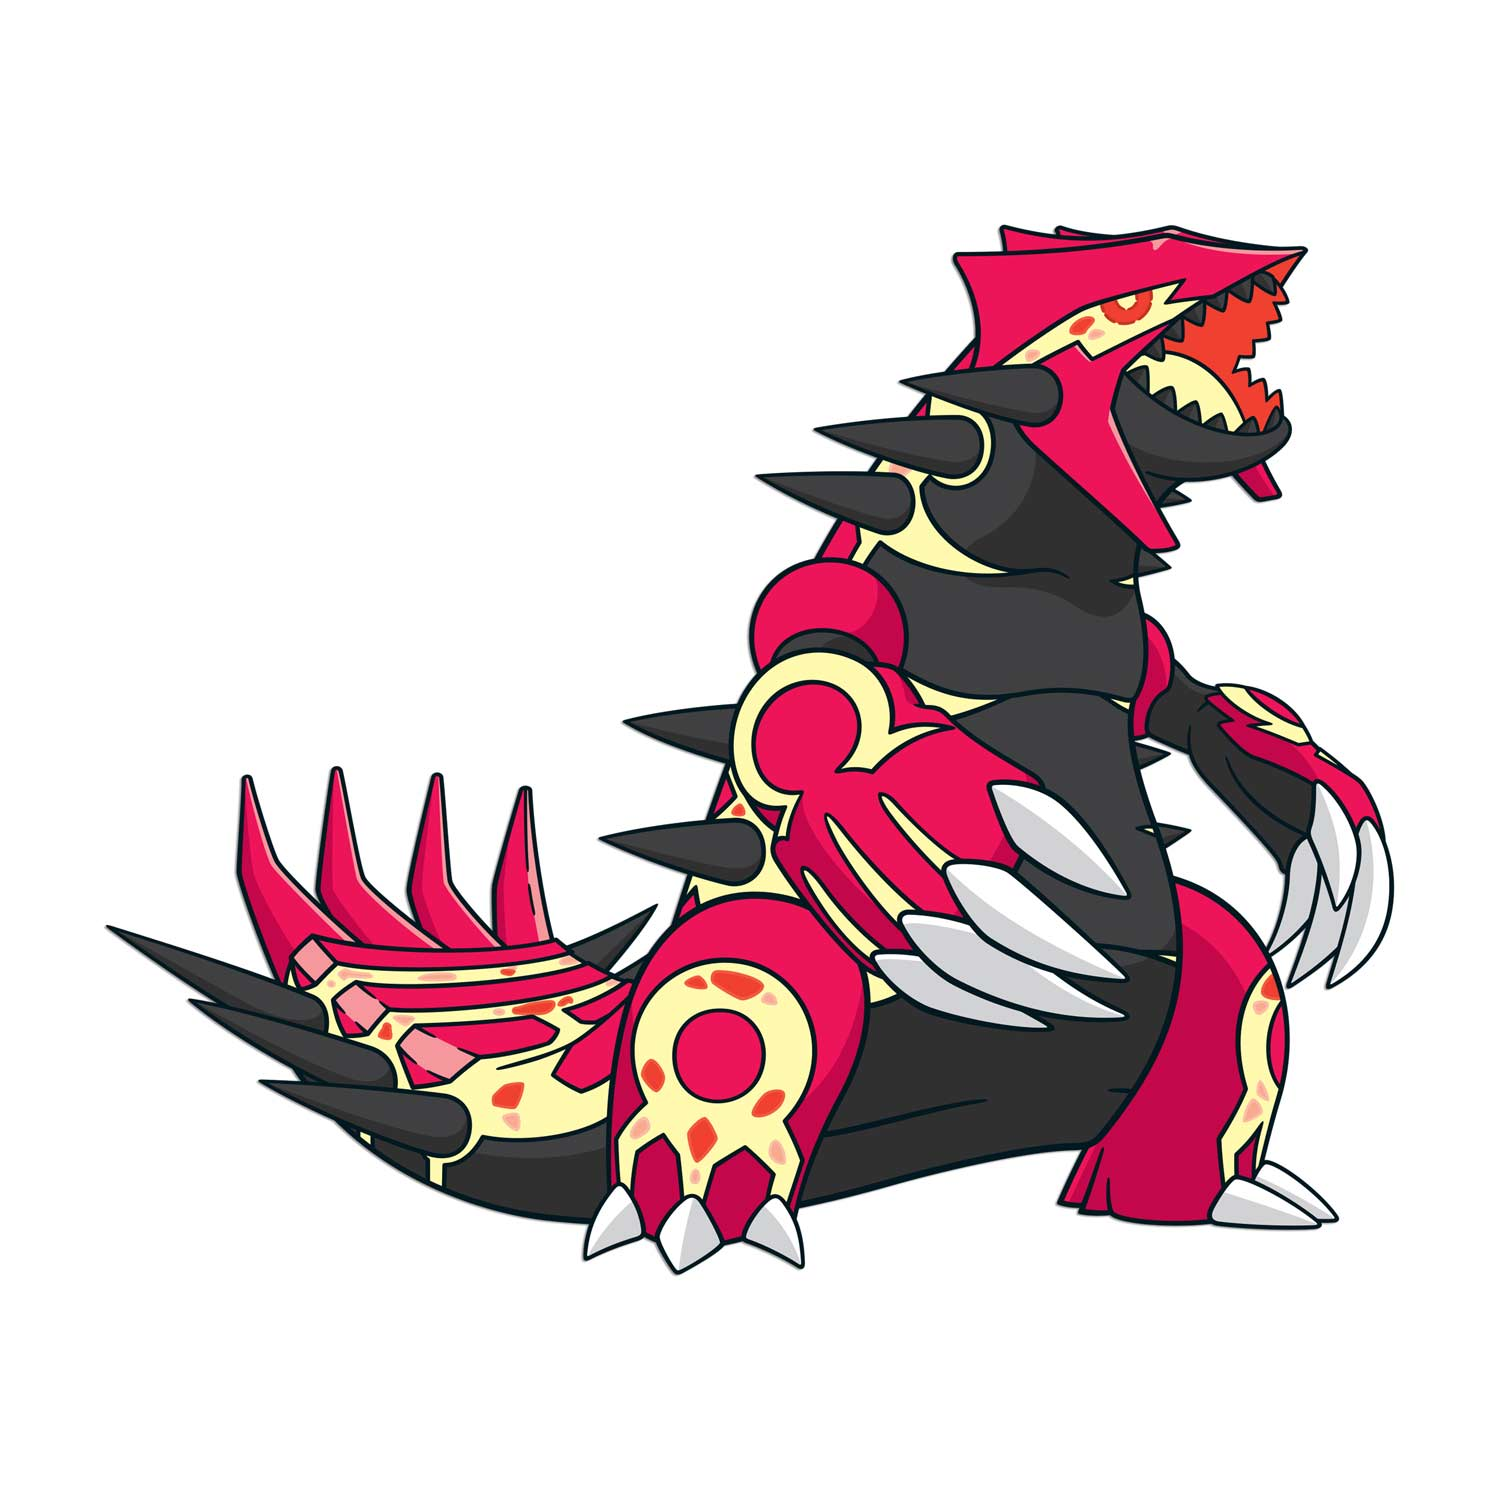 Primal Groudon Wall Graphics | Groudon | Pokémon Center ...